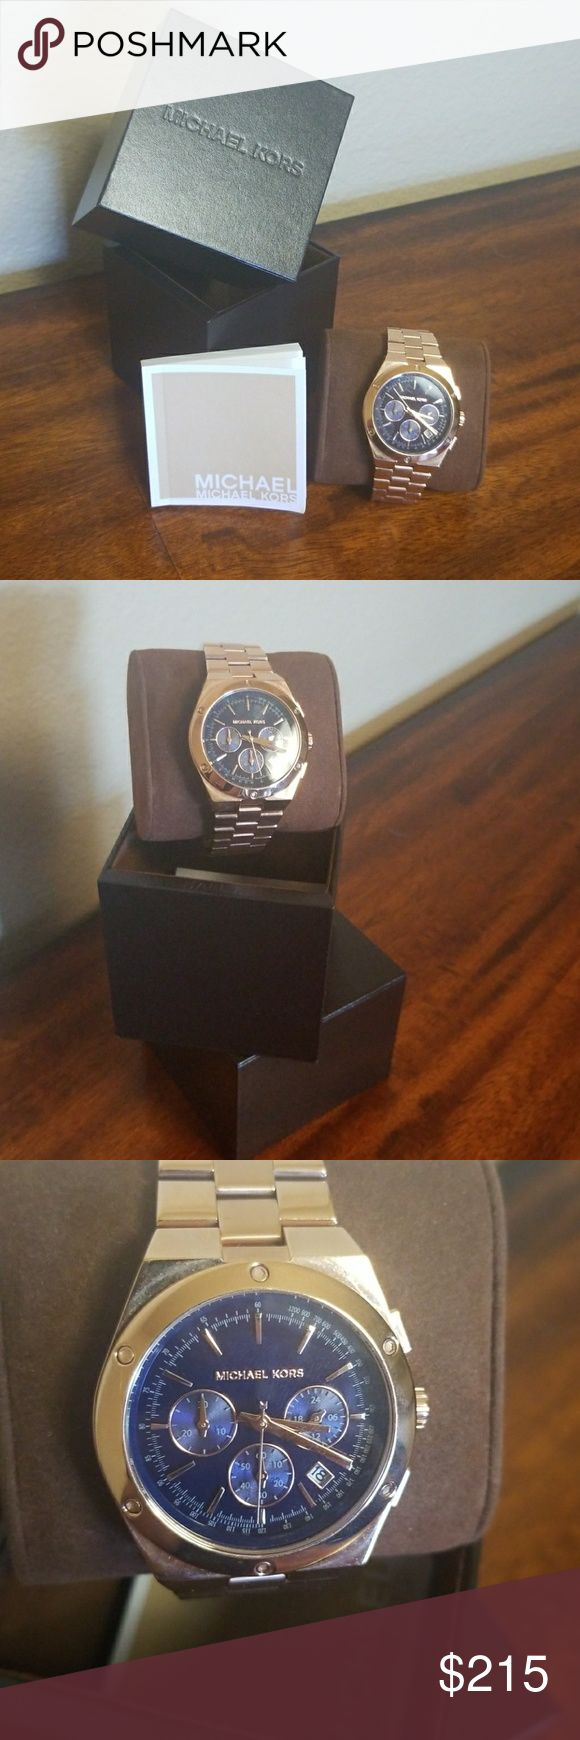 Michael Kors Men's watch This watch has never been worn before. It is rose gold with a navy blue face. Has a instruction manual. It has a chronograph minute hand, a 24 hour hand and also a chronograph second hand. It also has a date fixture. Michael Kors Accessories Watches